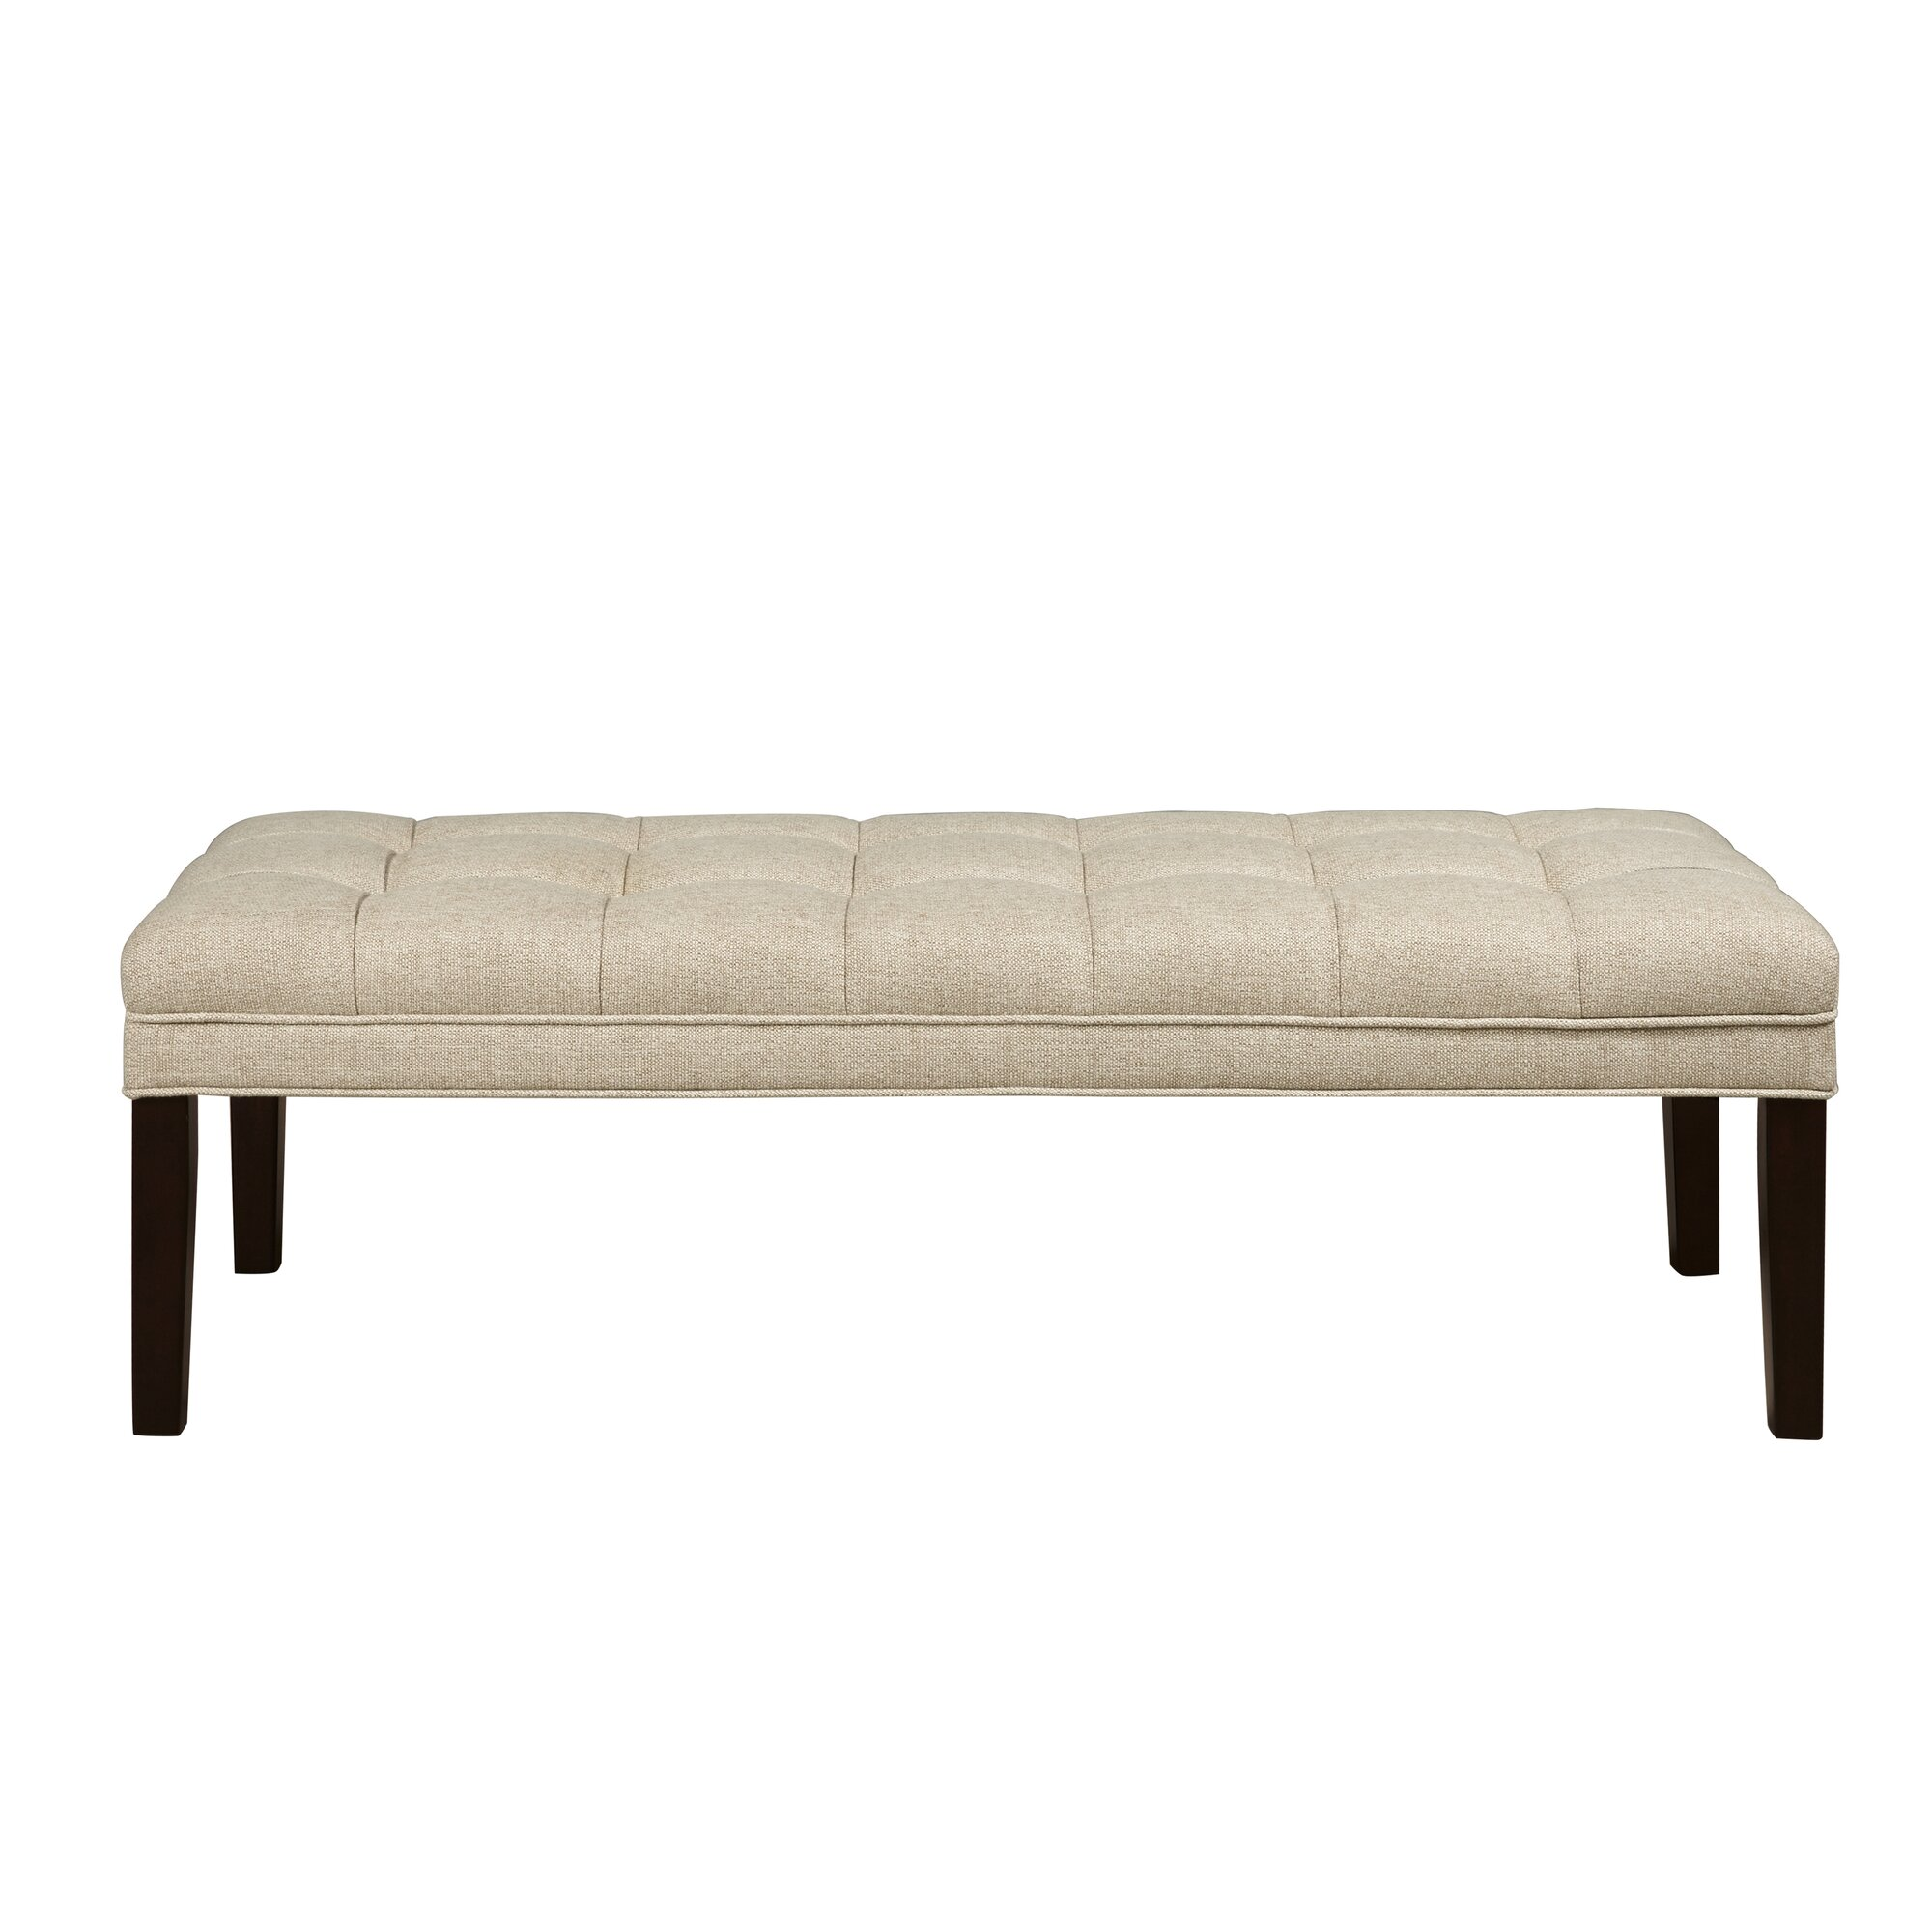 Bedroom bench dimensions - Upholstered Tufted Bedroom Bench